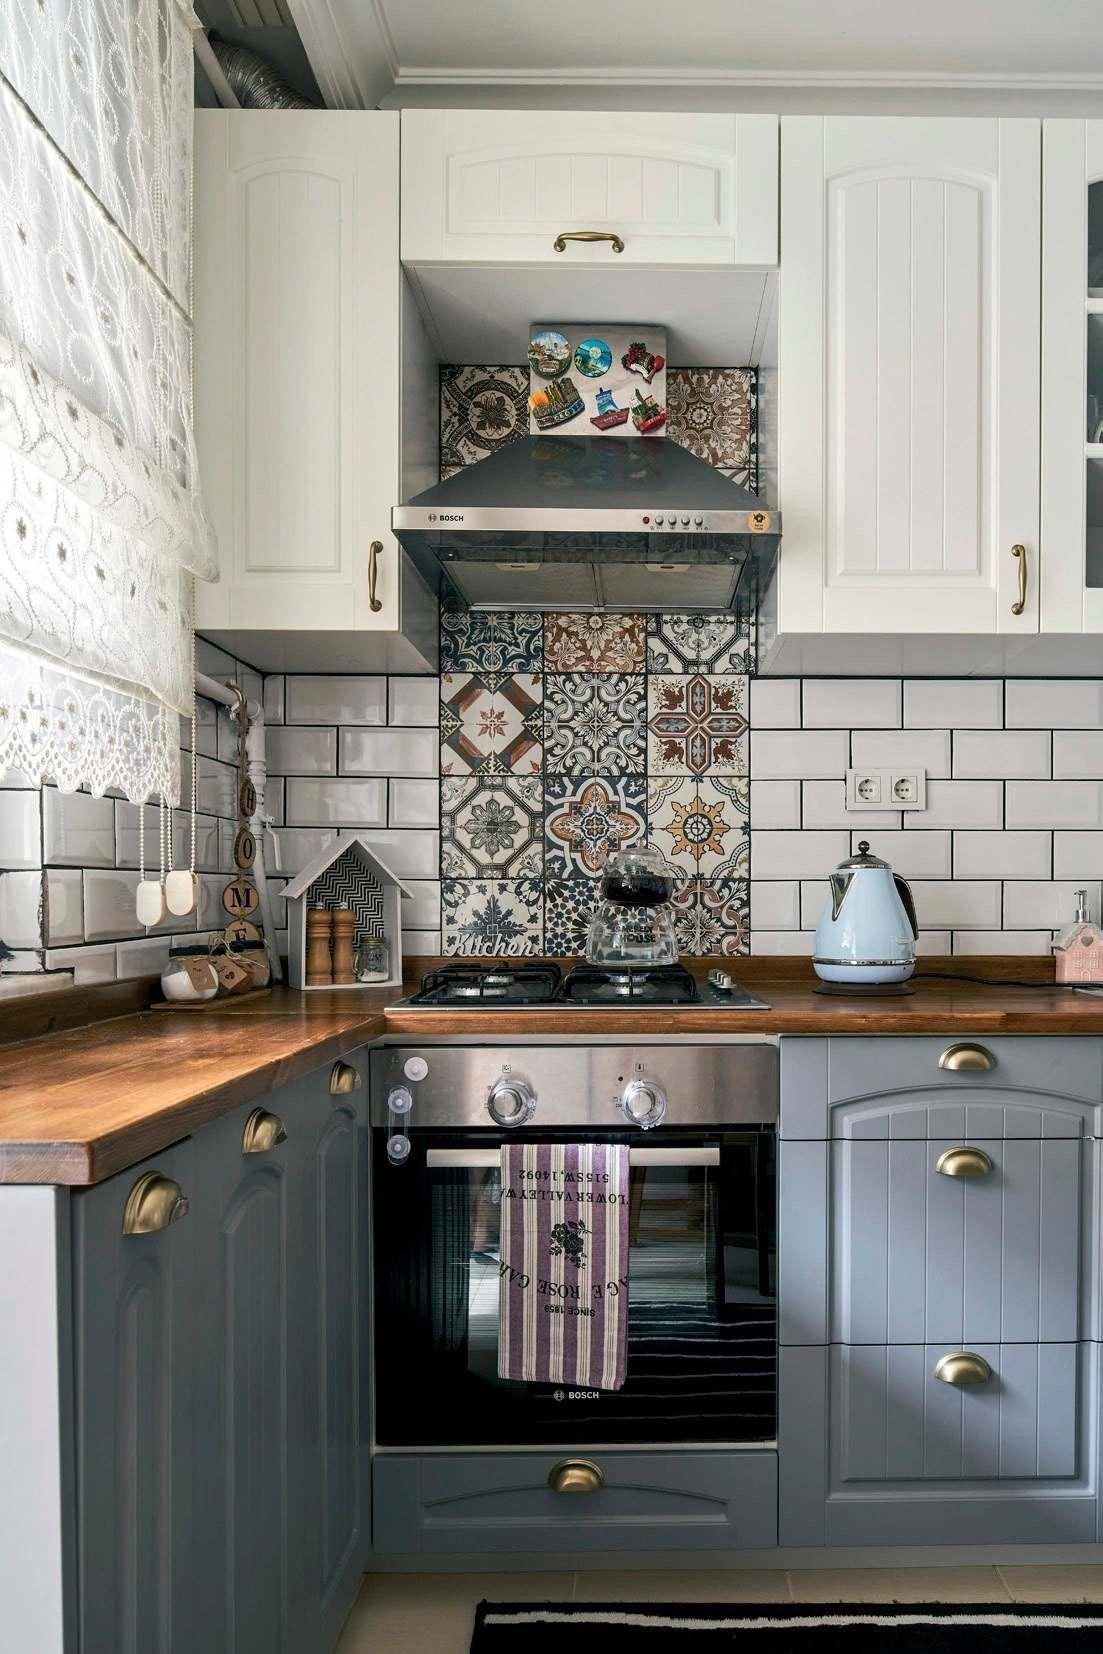 Interior Design Ideas For Kitchen Red And Teal Kitchen Decor Small Kitchen Wall Decor Ideas 20190321 Home Decor Kitchen Rustic Kitchen Kitchen Design